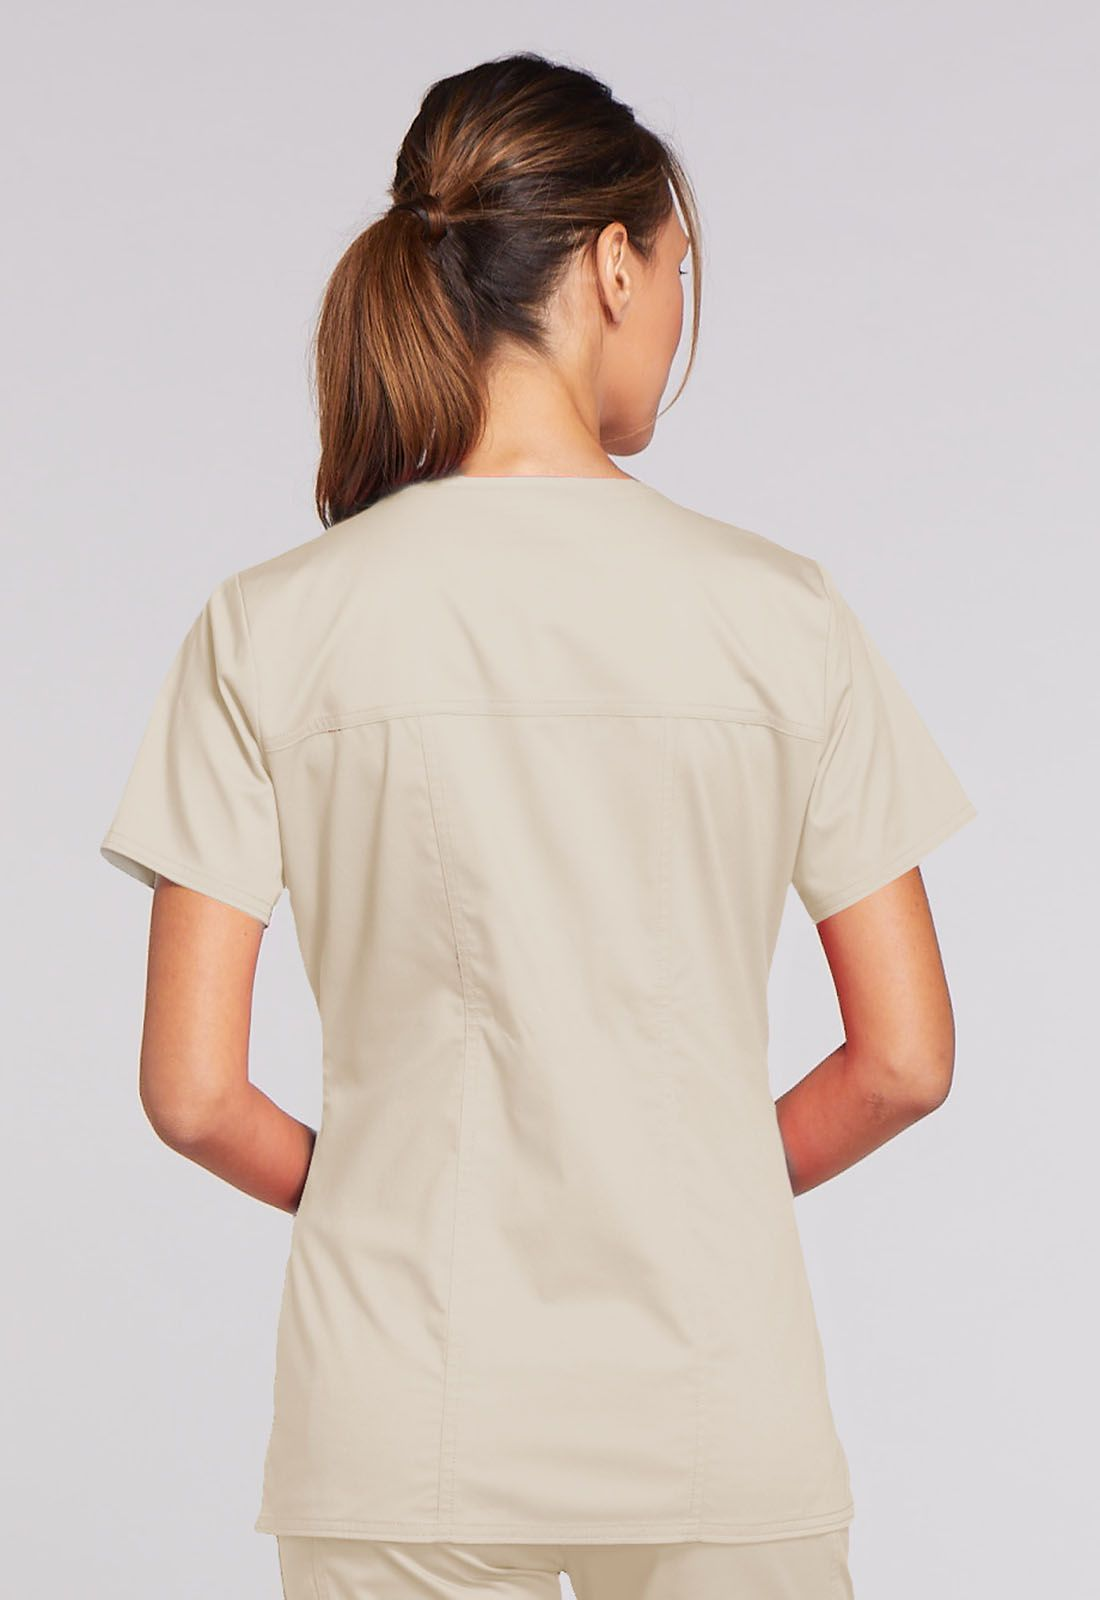 https://medcloth.by/images/stories/virtuemart/product/4727-khaki-4.jpg